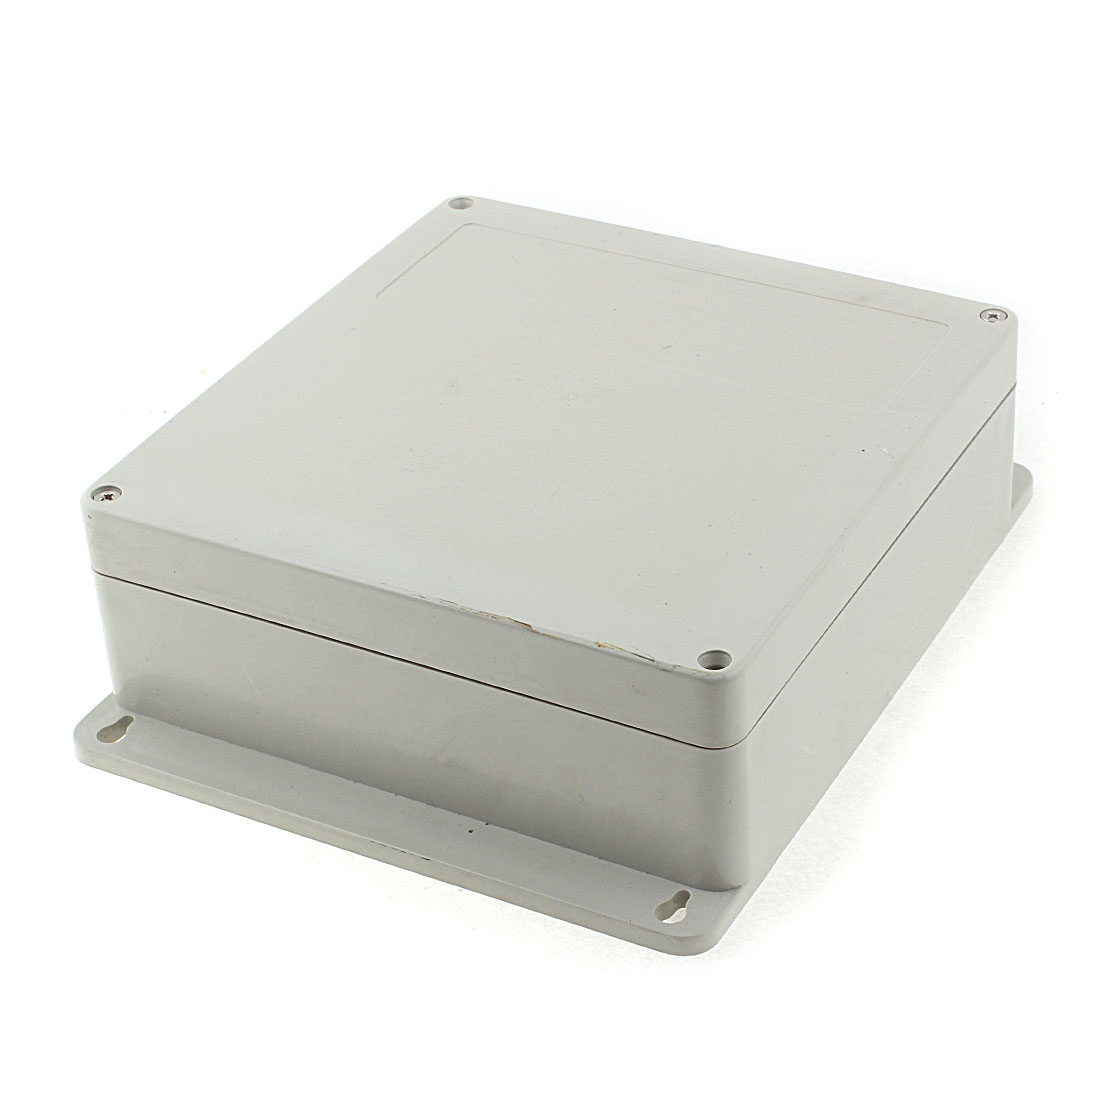 190mm x 180mm x 70mm Plastic Outdoor Electrical Enclosure Junction Box Case Gray